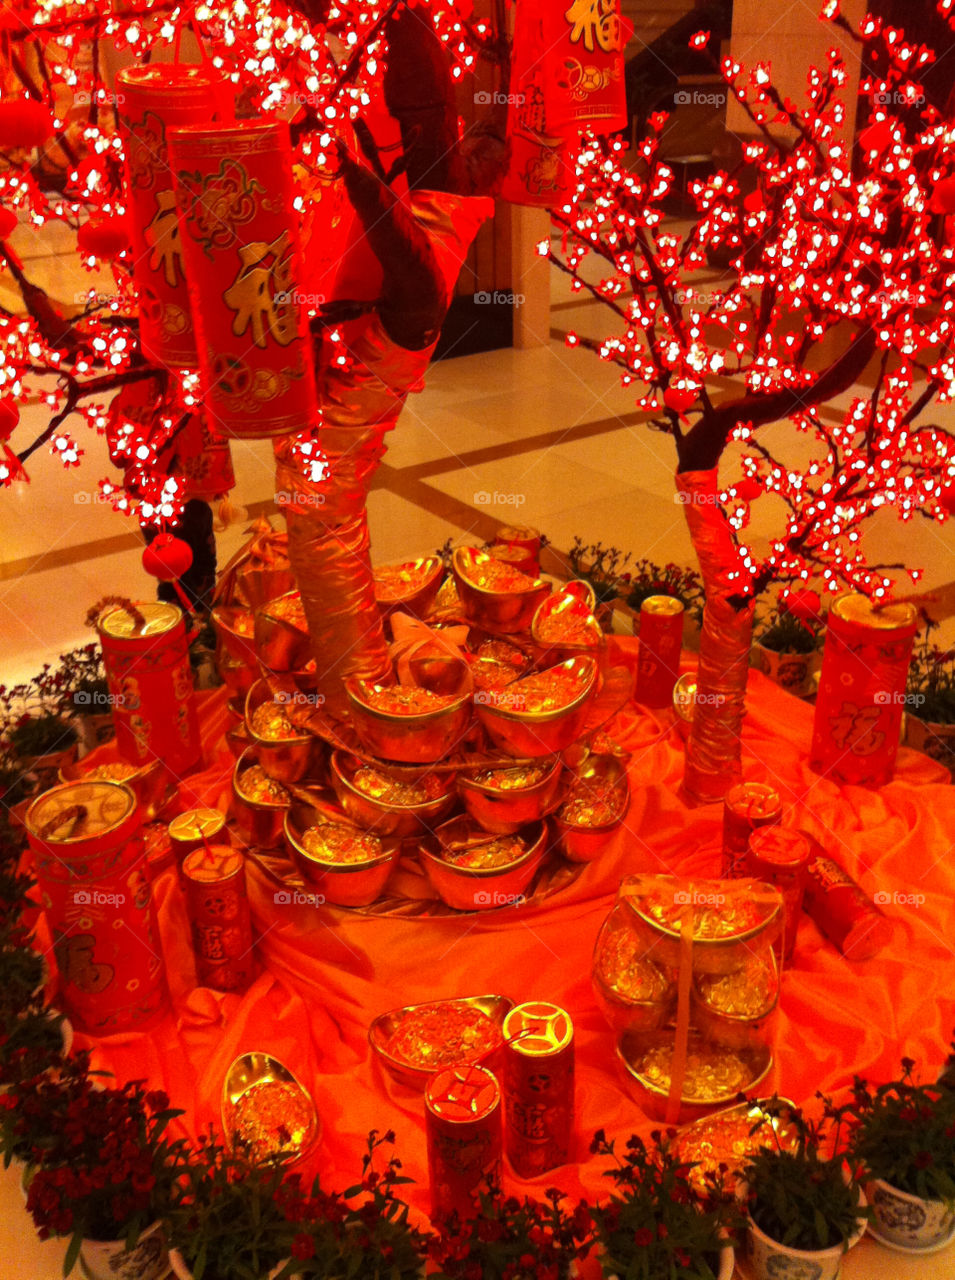 A display ushering in the Chinese New Year.